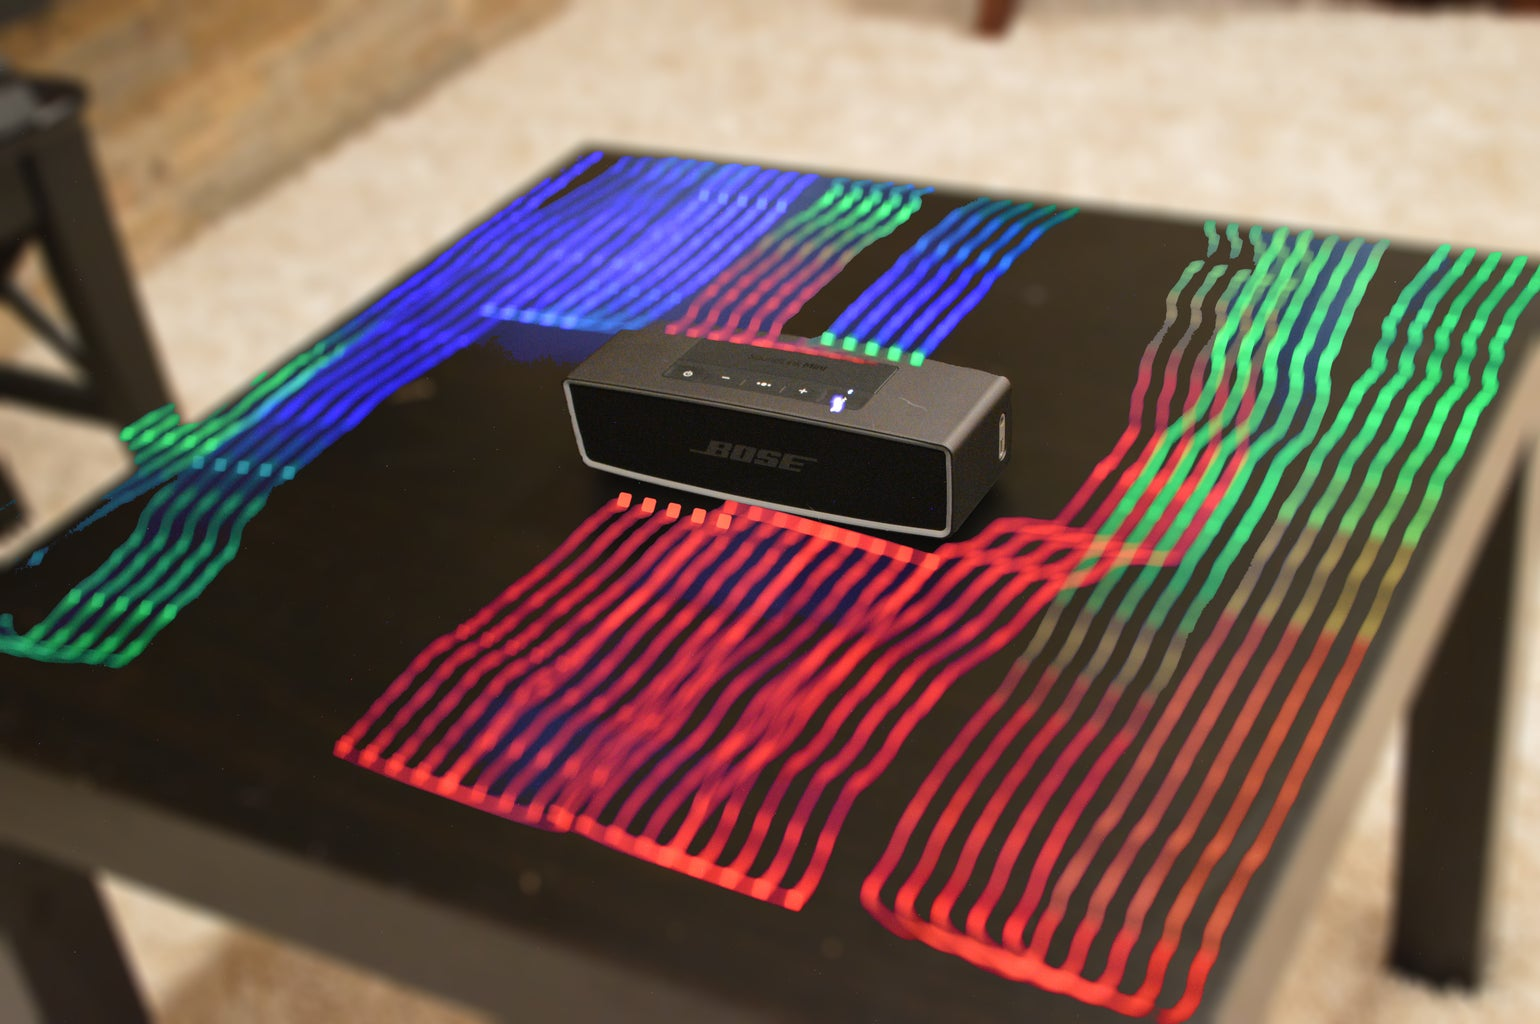 Visualize Bluetooth in a Long Exposure Photo